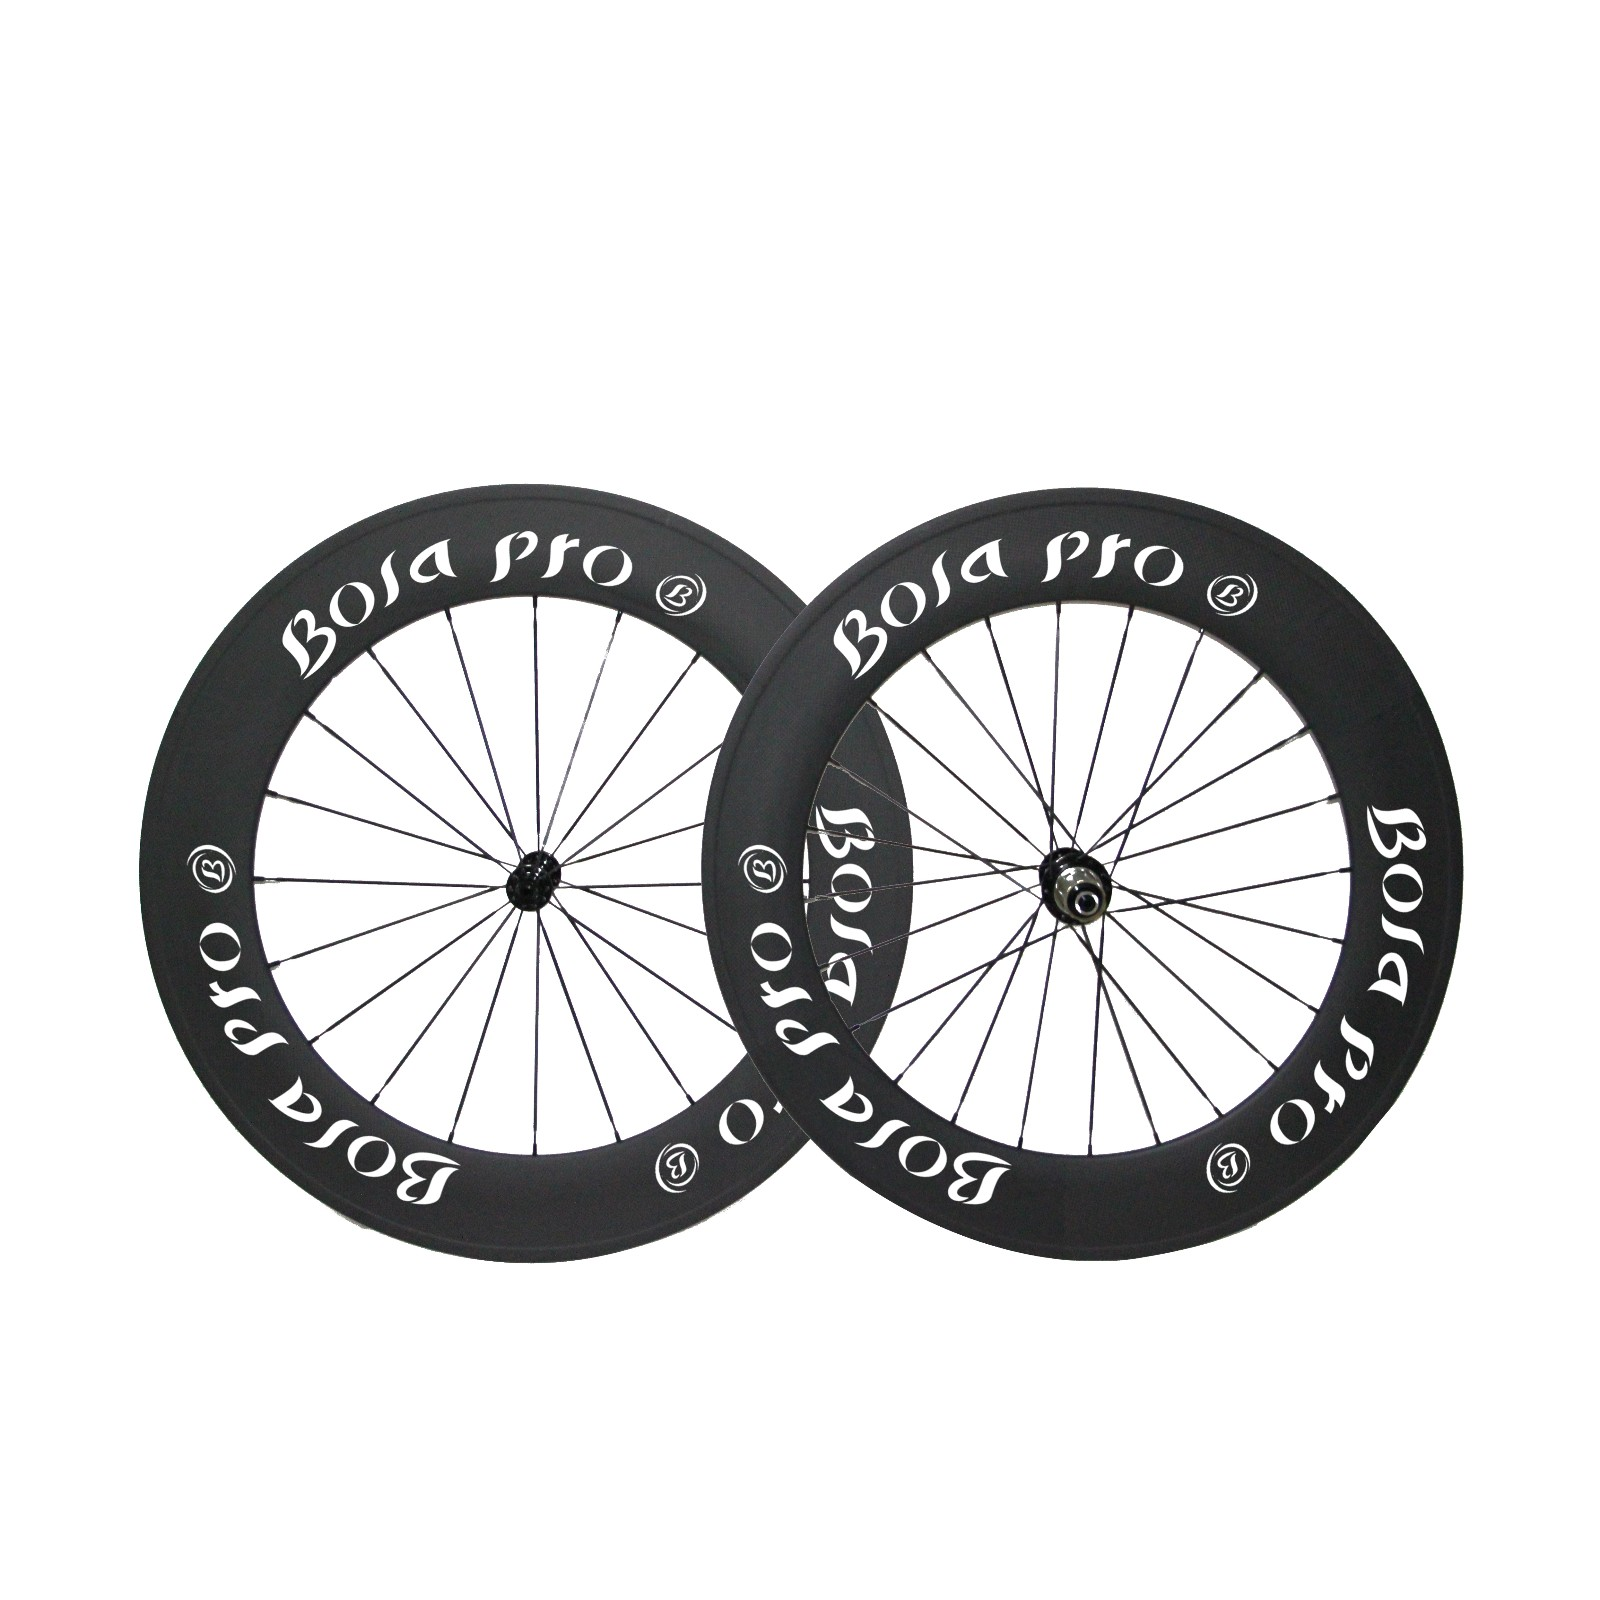 700C 88mm carbon wheelset with ceramic bearing hub